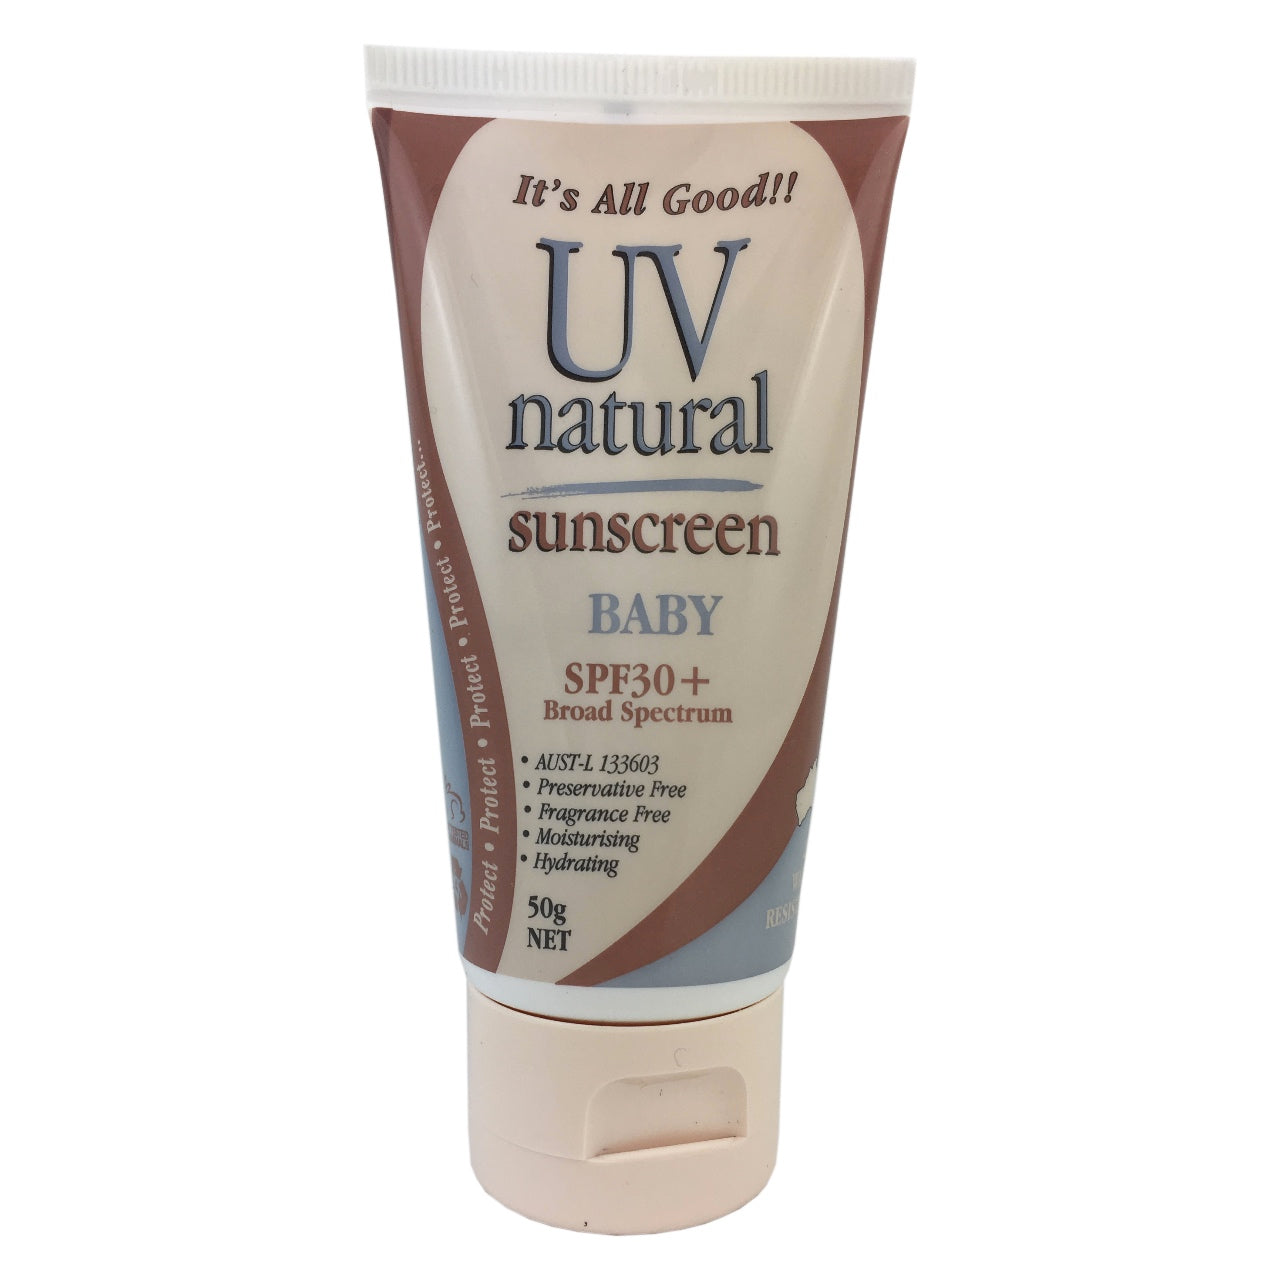 UV Natural Sunscreen for Baby SPF30+